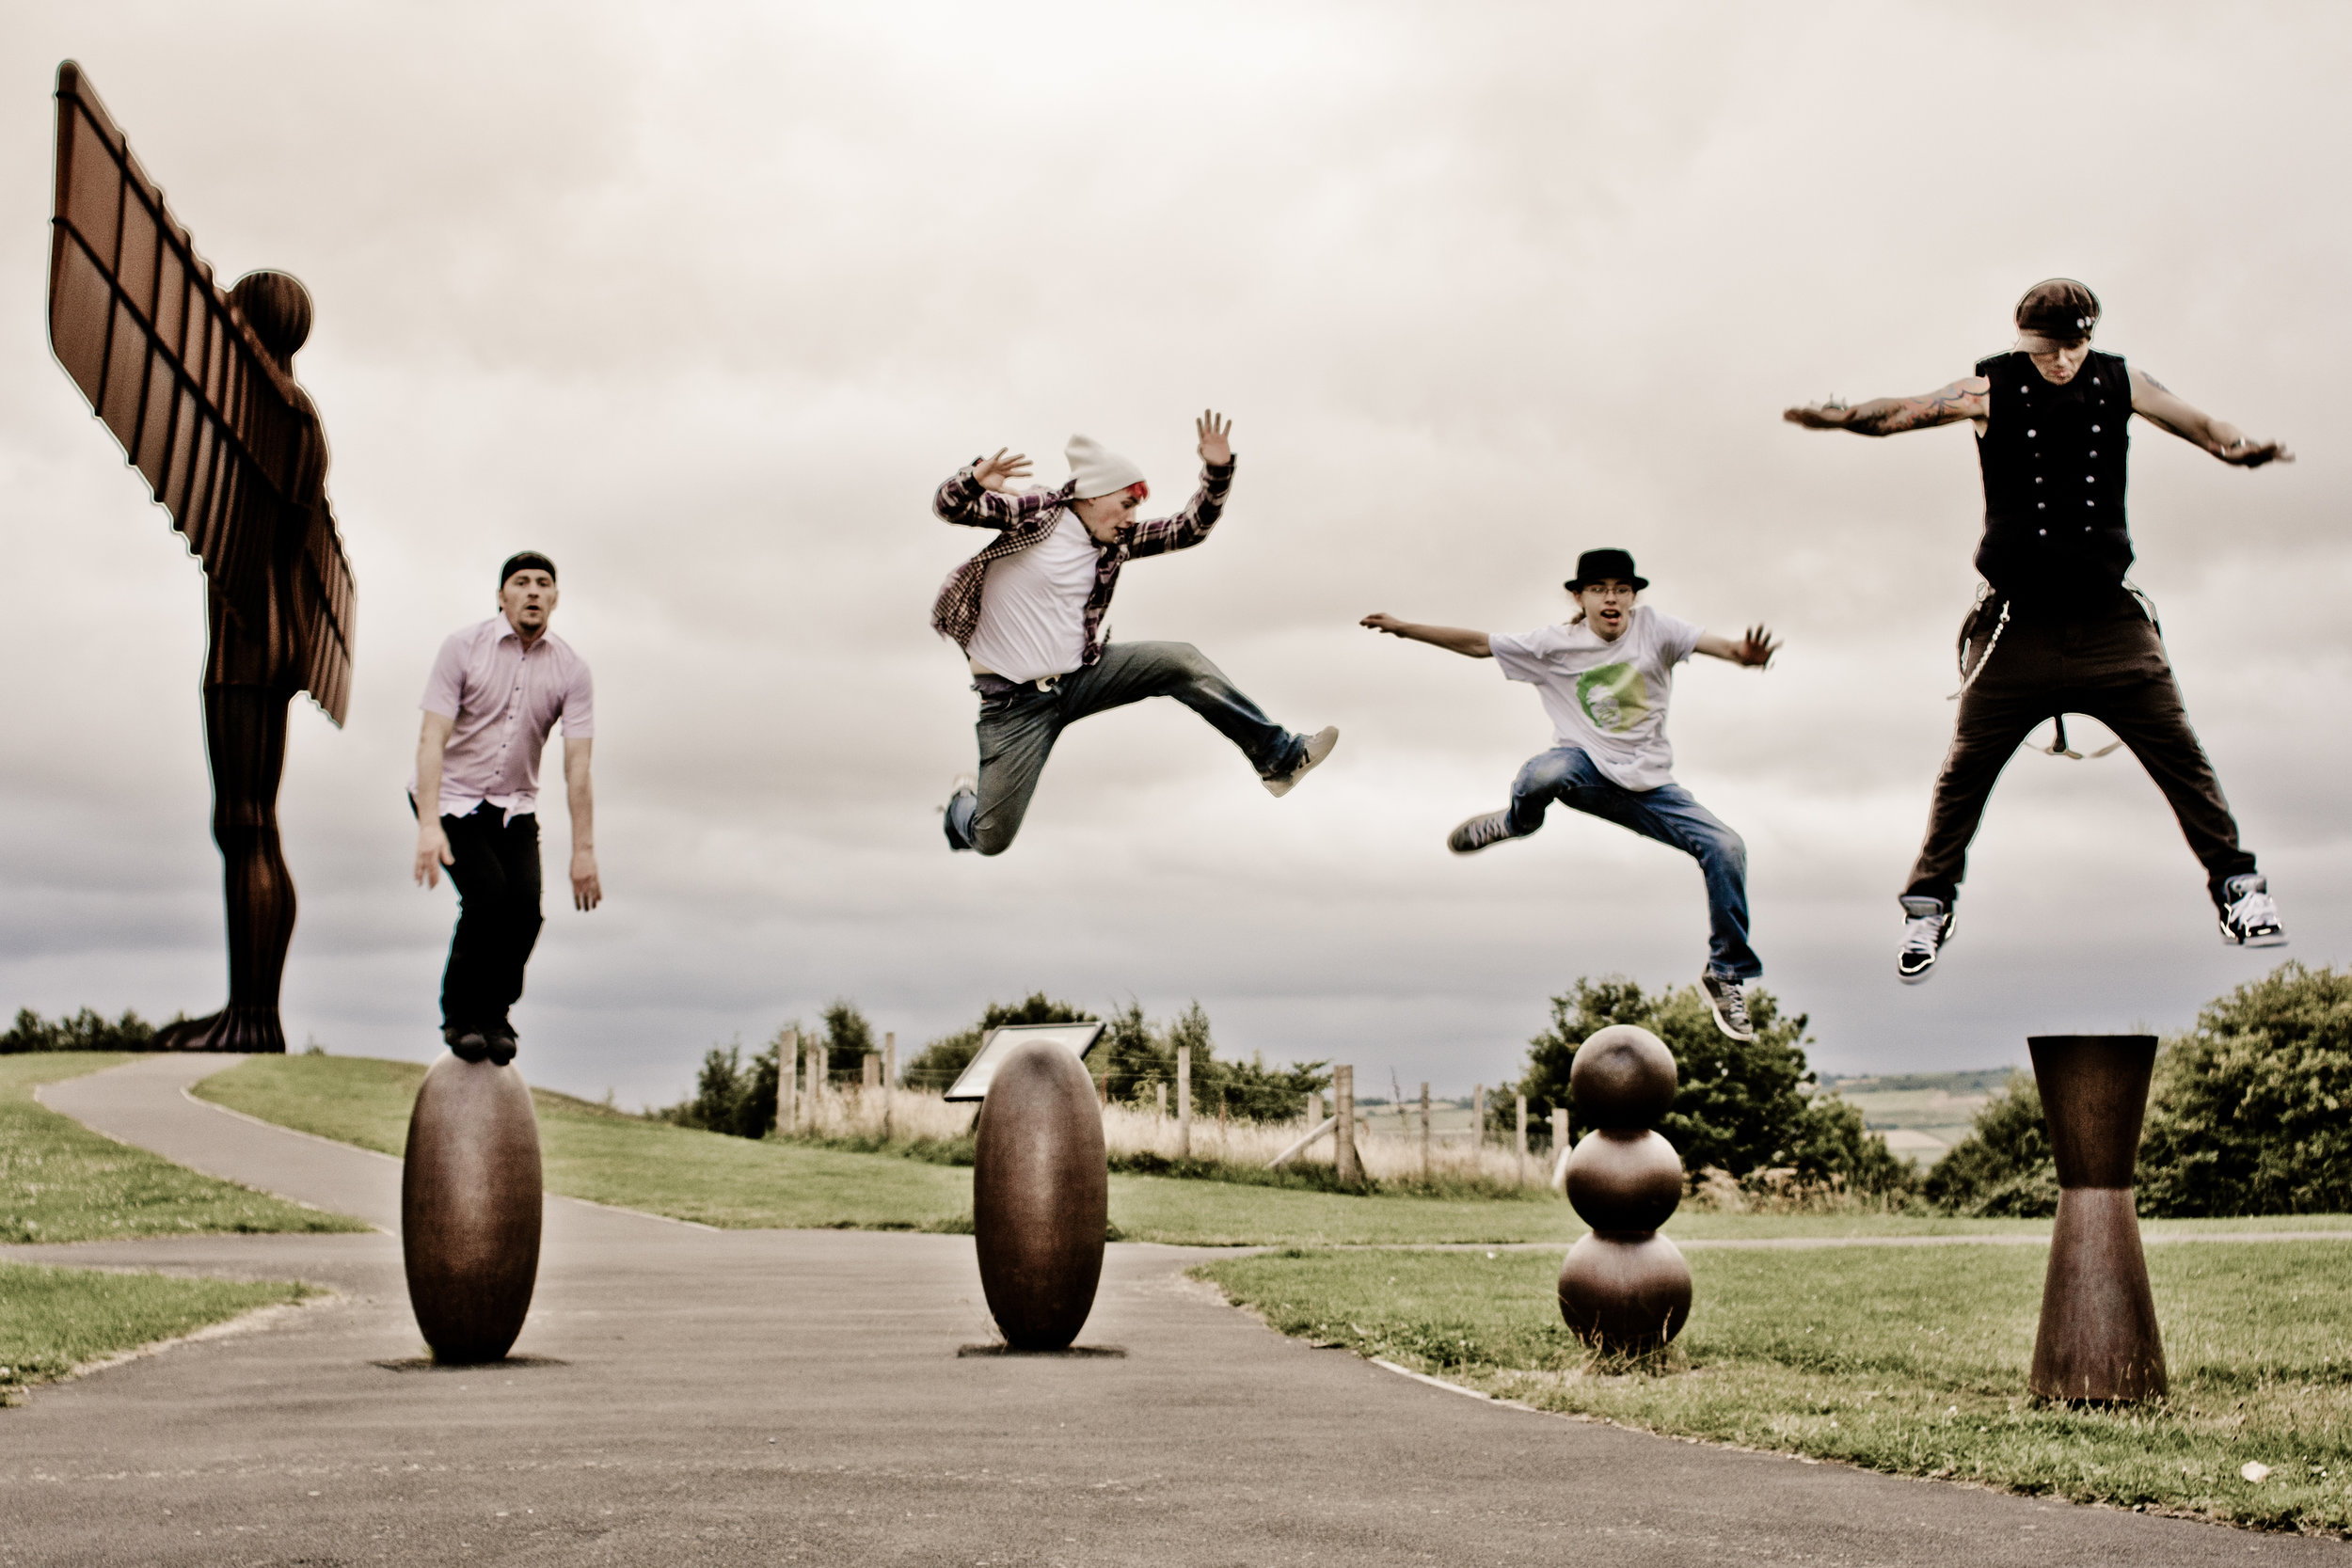 Reet Hot! - The Uk's greatest Red Hot Chili Peppers cover band… The REET Hot Chili Peppers. Promotional photography beside the incredible North East landmark, the Angel of the North,